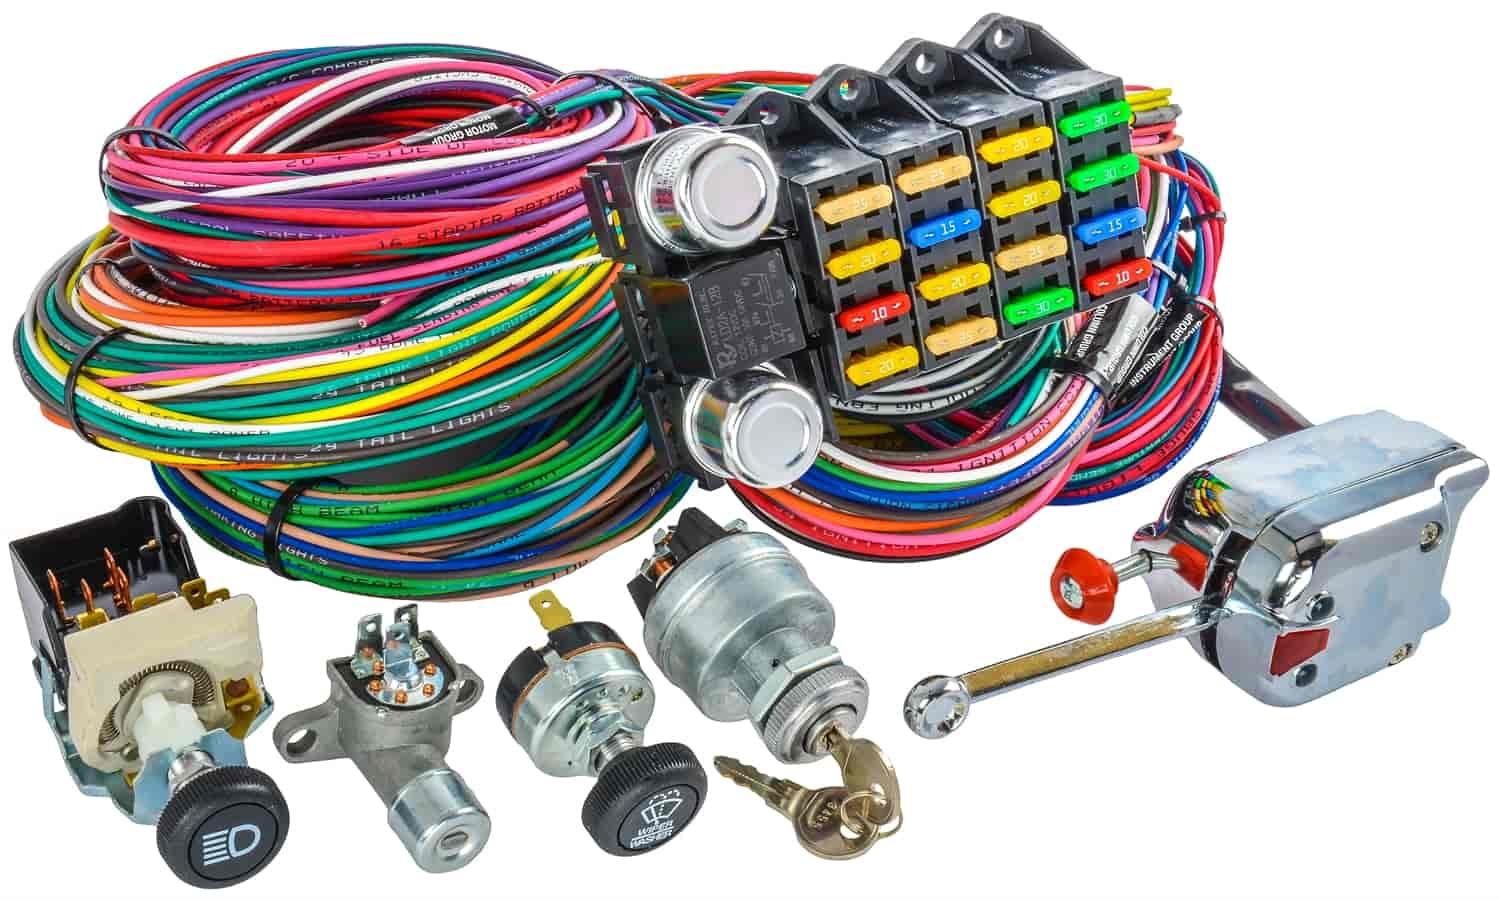 hight resolution of duracraft pontoon wiring harness wiring diagram duracraft pontoon wiring harness